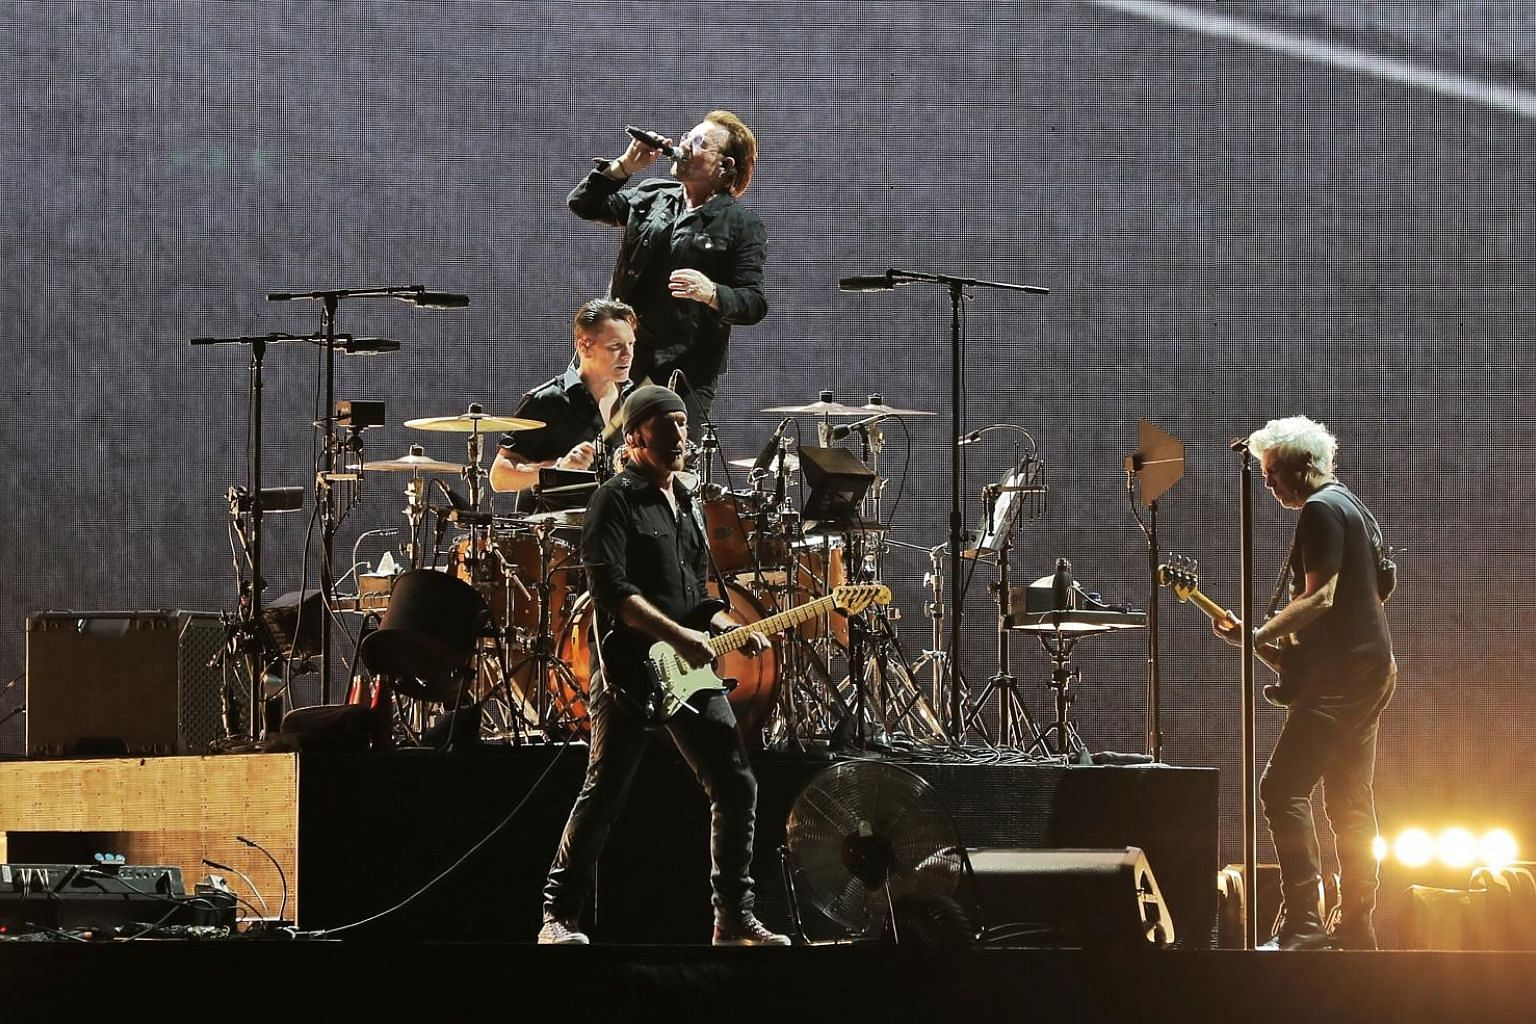 Irish rock band U2 comprising (from left) drummer Larry Mullen, guitarist The Edge, frontman Bono and bassist Adam Clayton performing at the National Stadium to a 50,000-strong sold-out crowd yesterday.